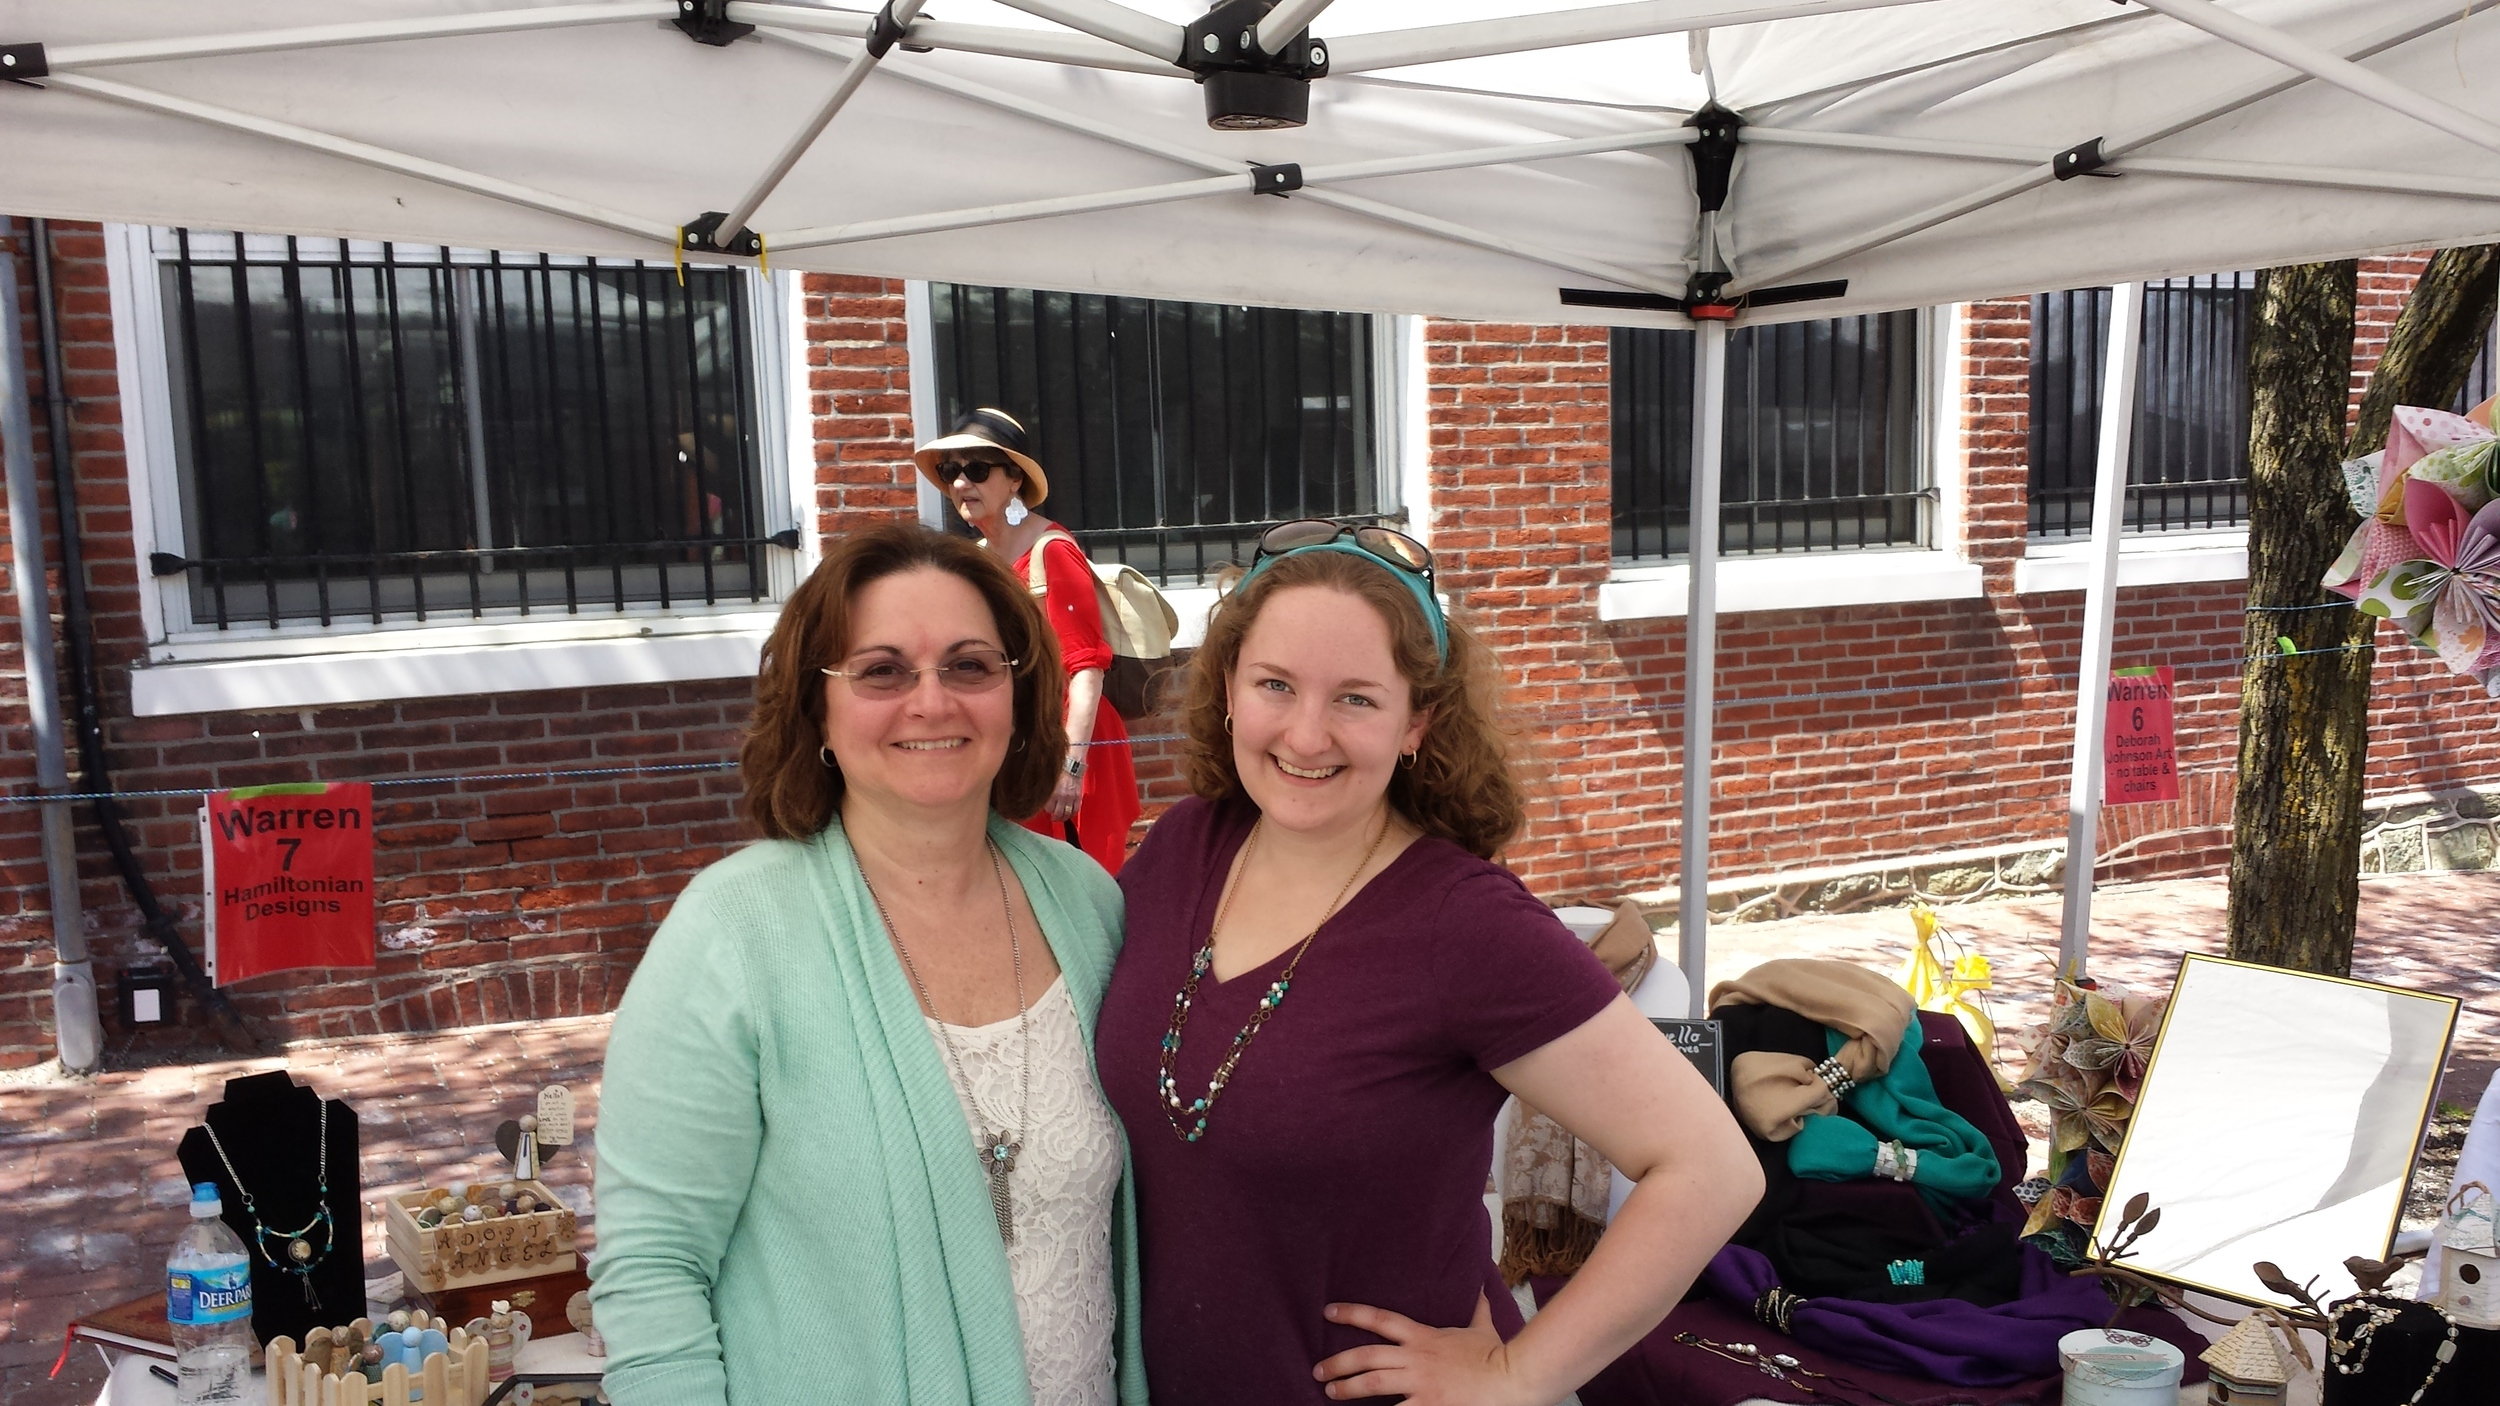 Me and my mom (and some random lady in a hat) in the Hamiltonian Designs tent at the Malvern Blooms Festival, 2015